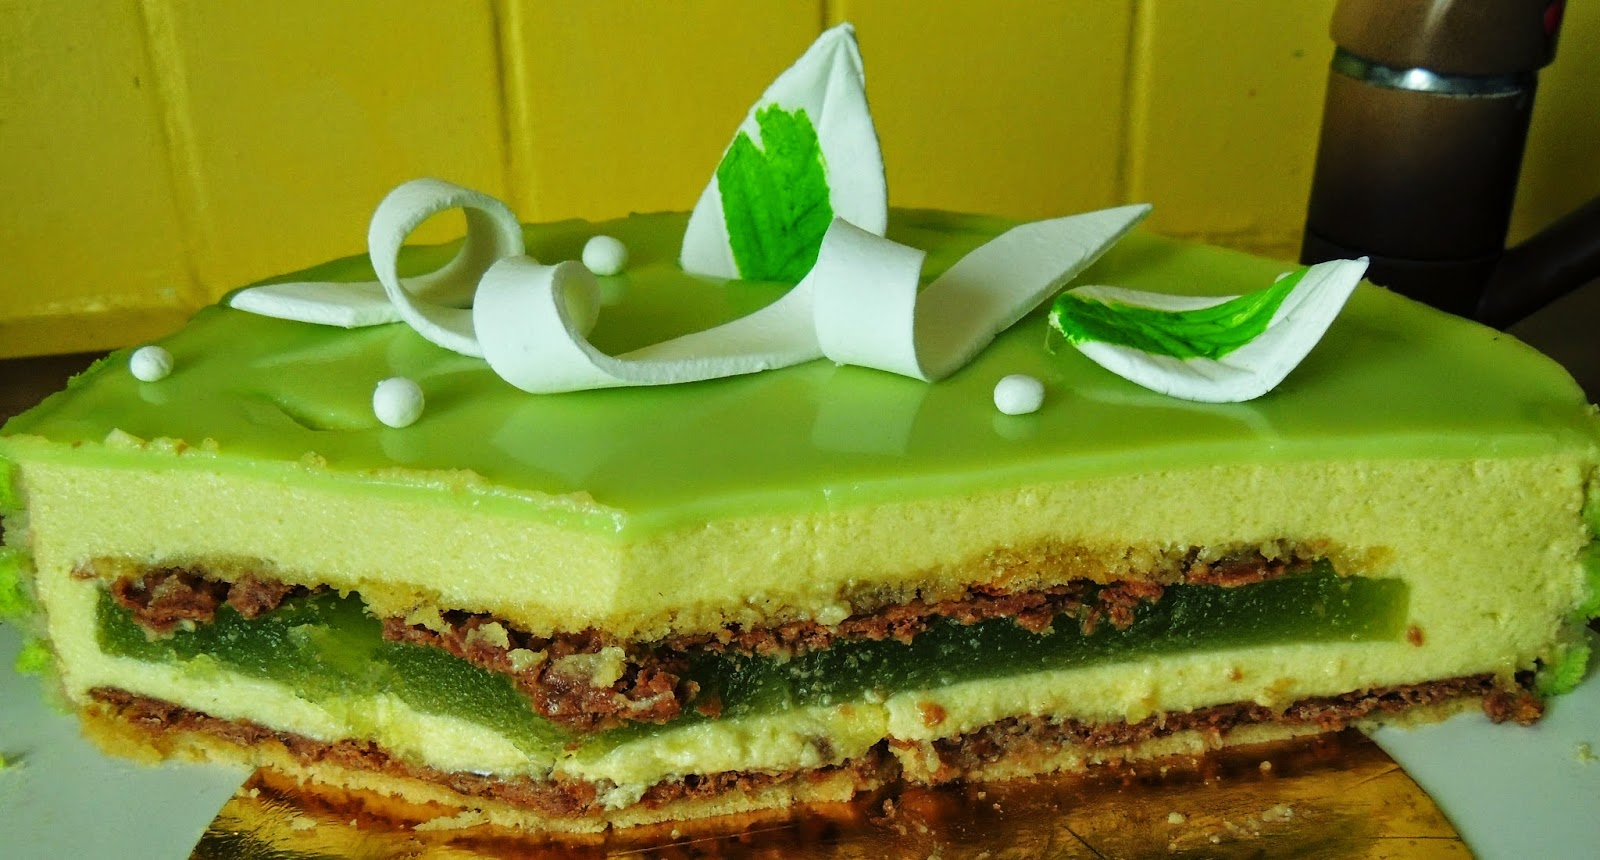 glacage gateau vert secrets culinaires g teaux et p tisseries blog photo. Black Bedroom Furniture Sets. Home Design Ideas